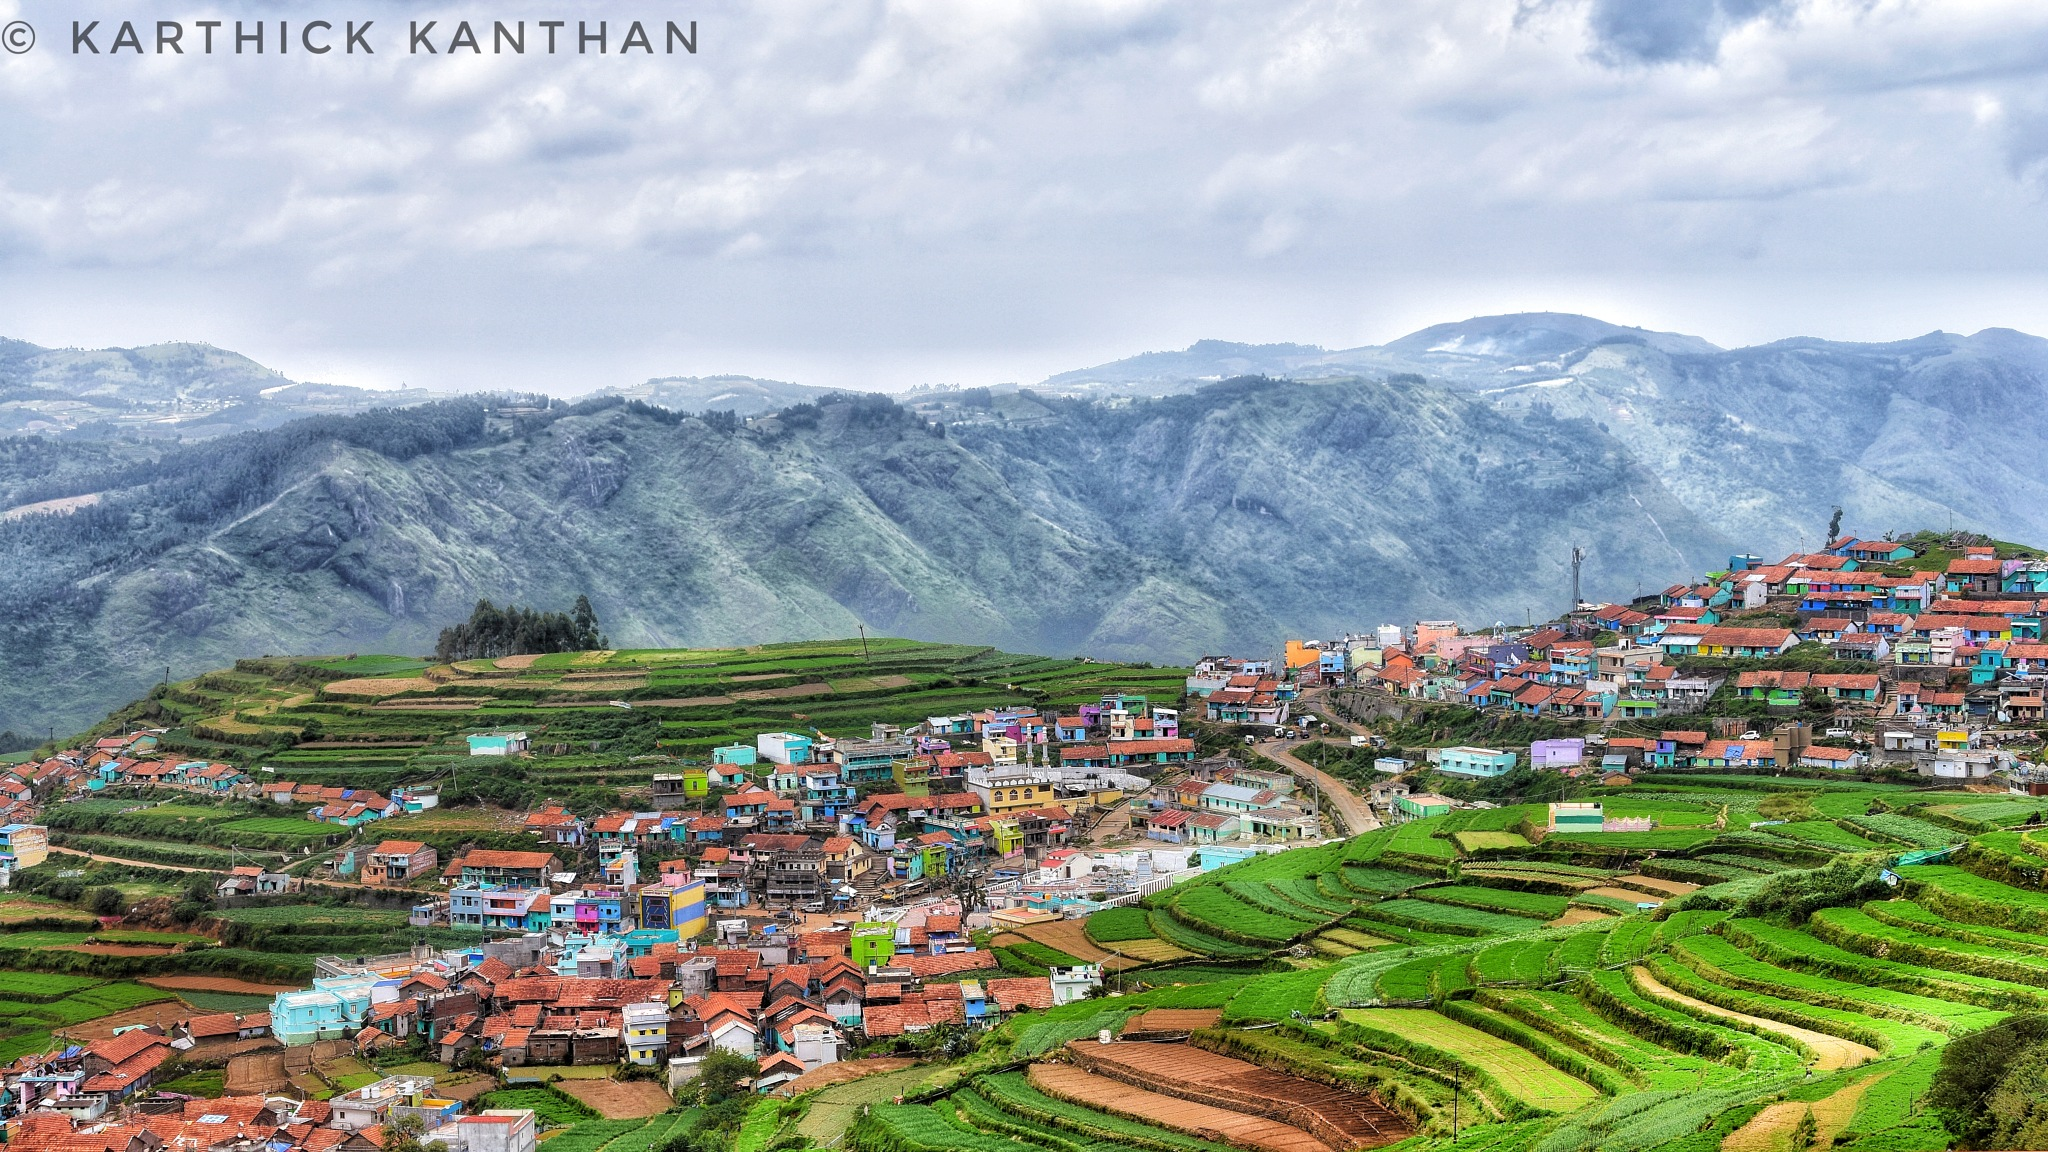 Untitled by Karthick Kanthan